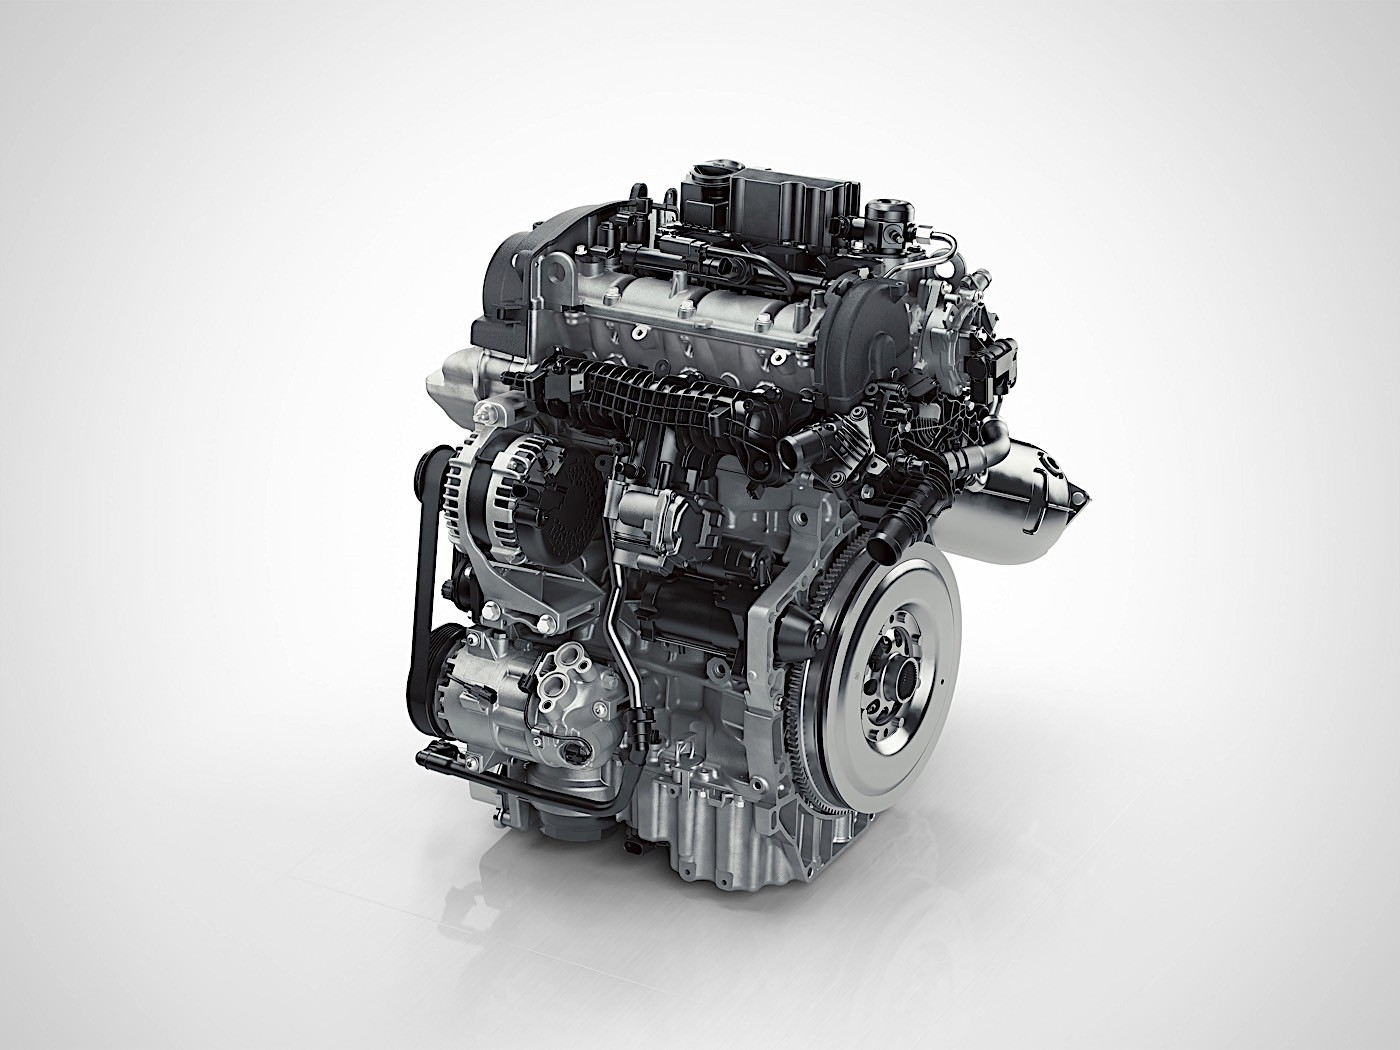 Volvo XC40 Gets The Brand's First-Ever Three Cylinder Engine